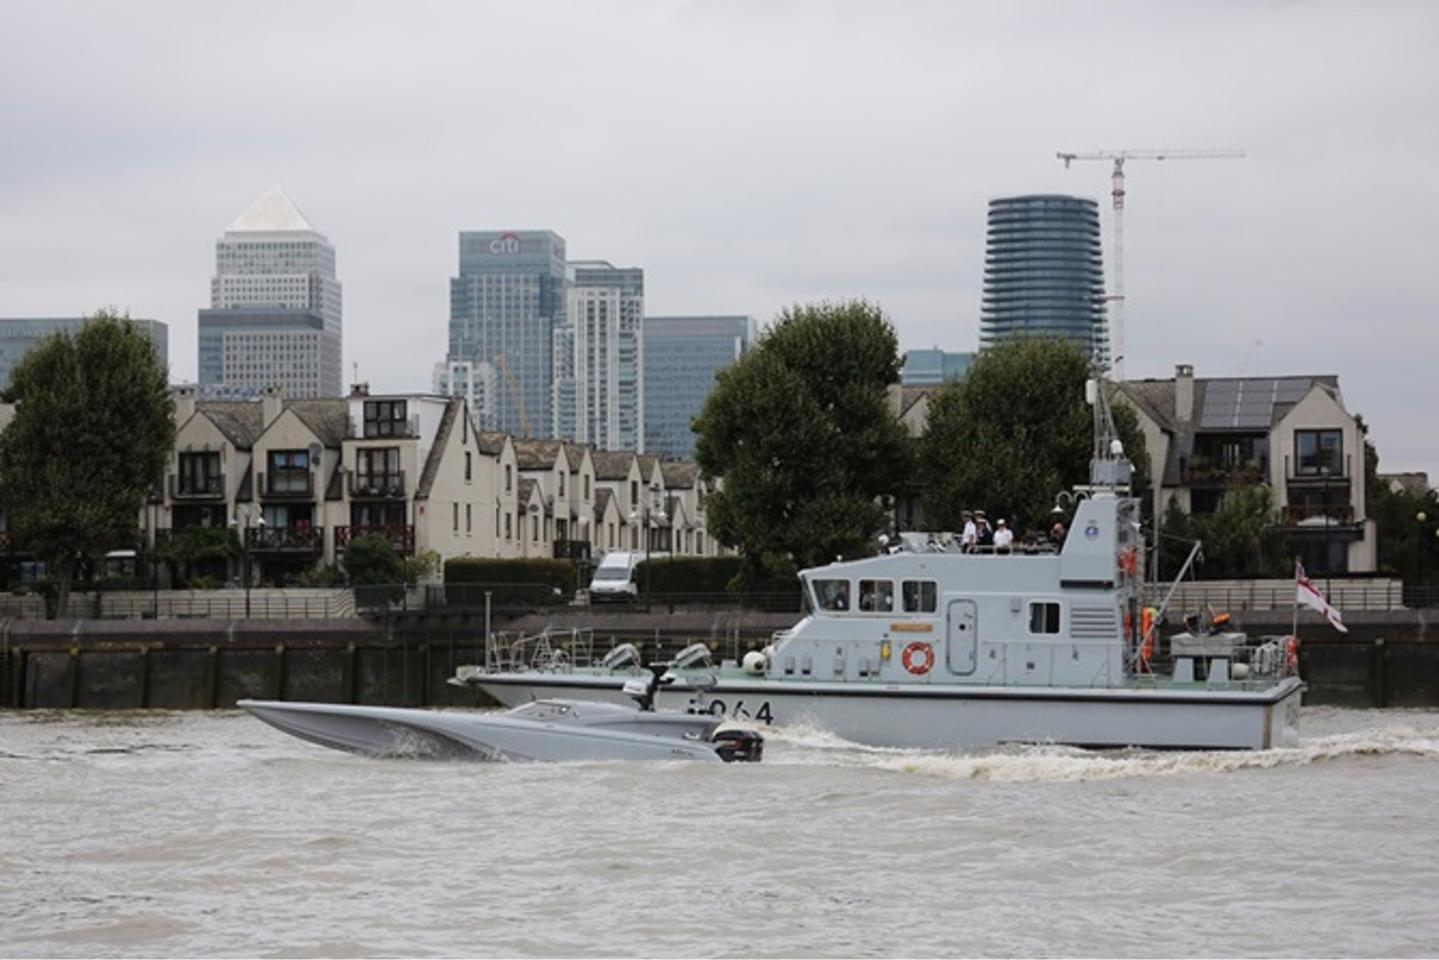 The MAST will take part in the Unmanned Warrior exercise in coming months